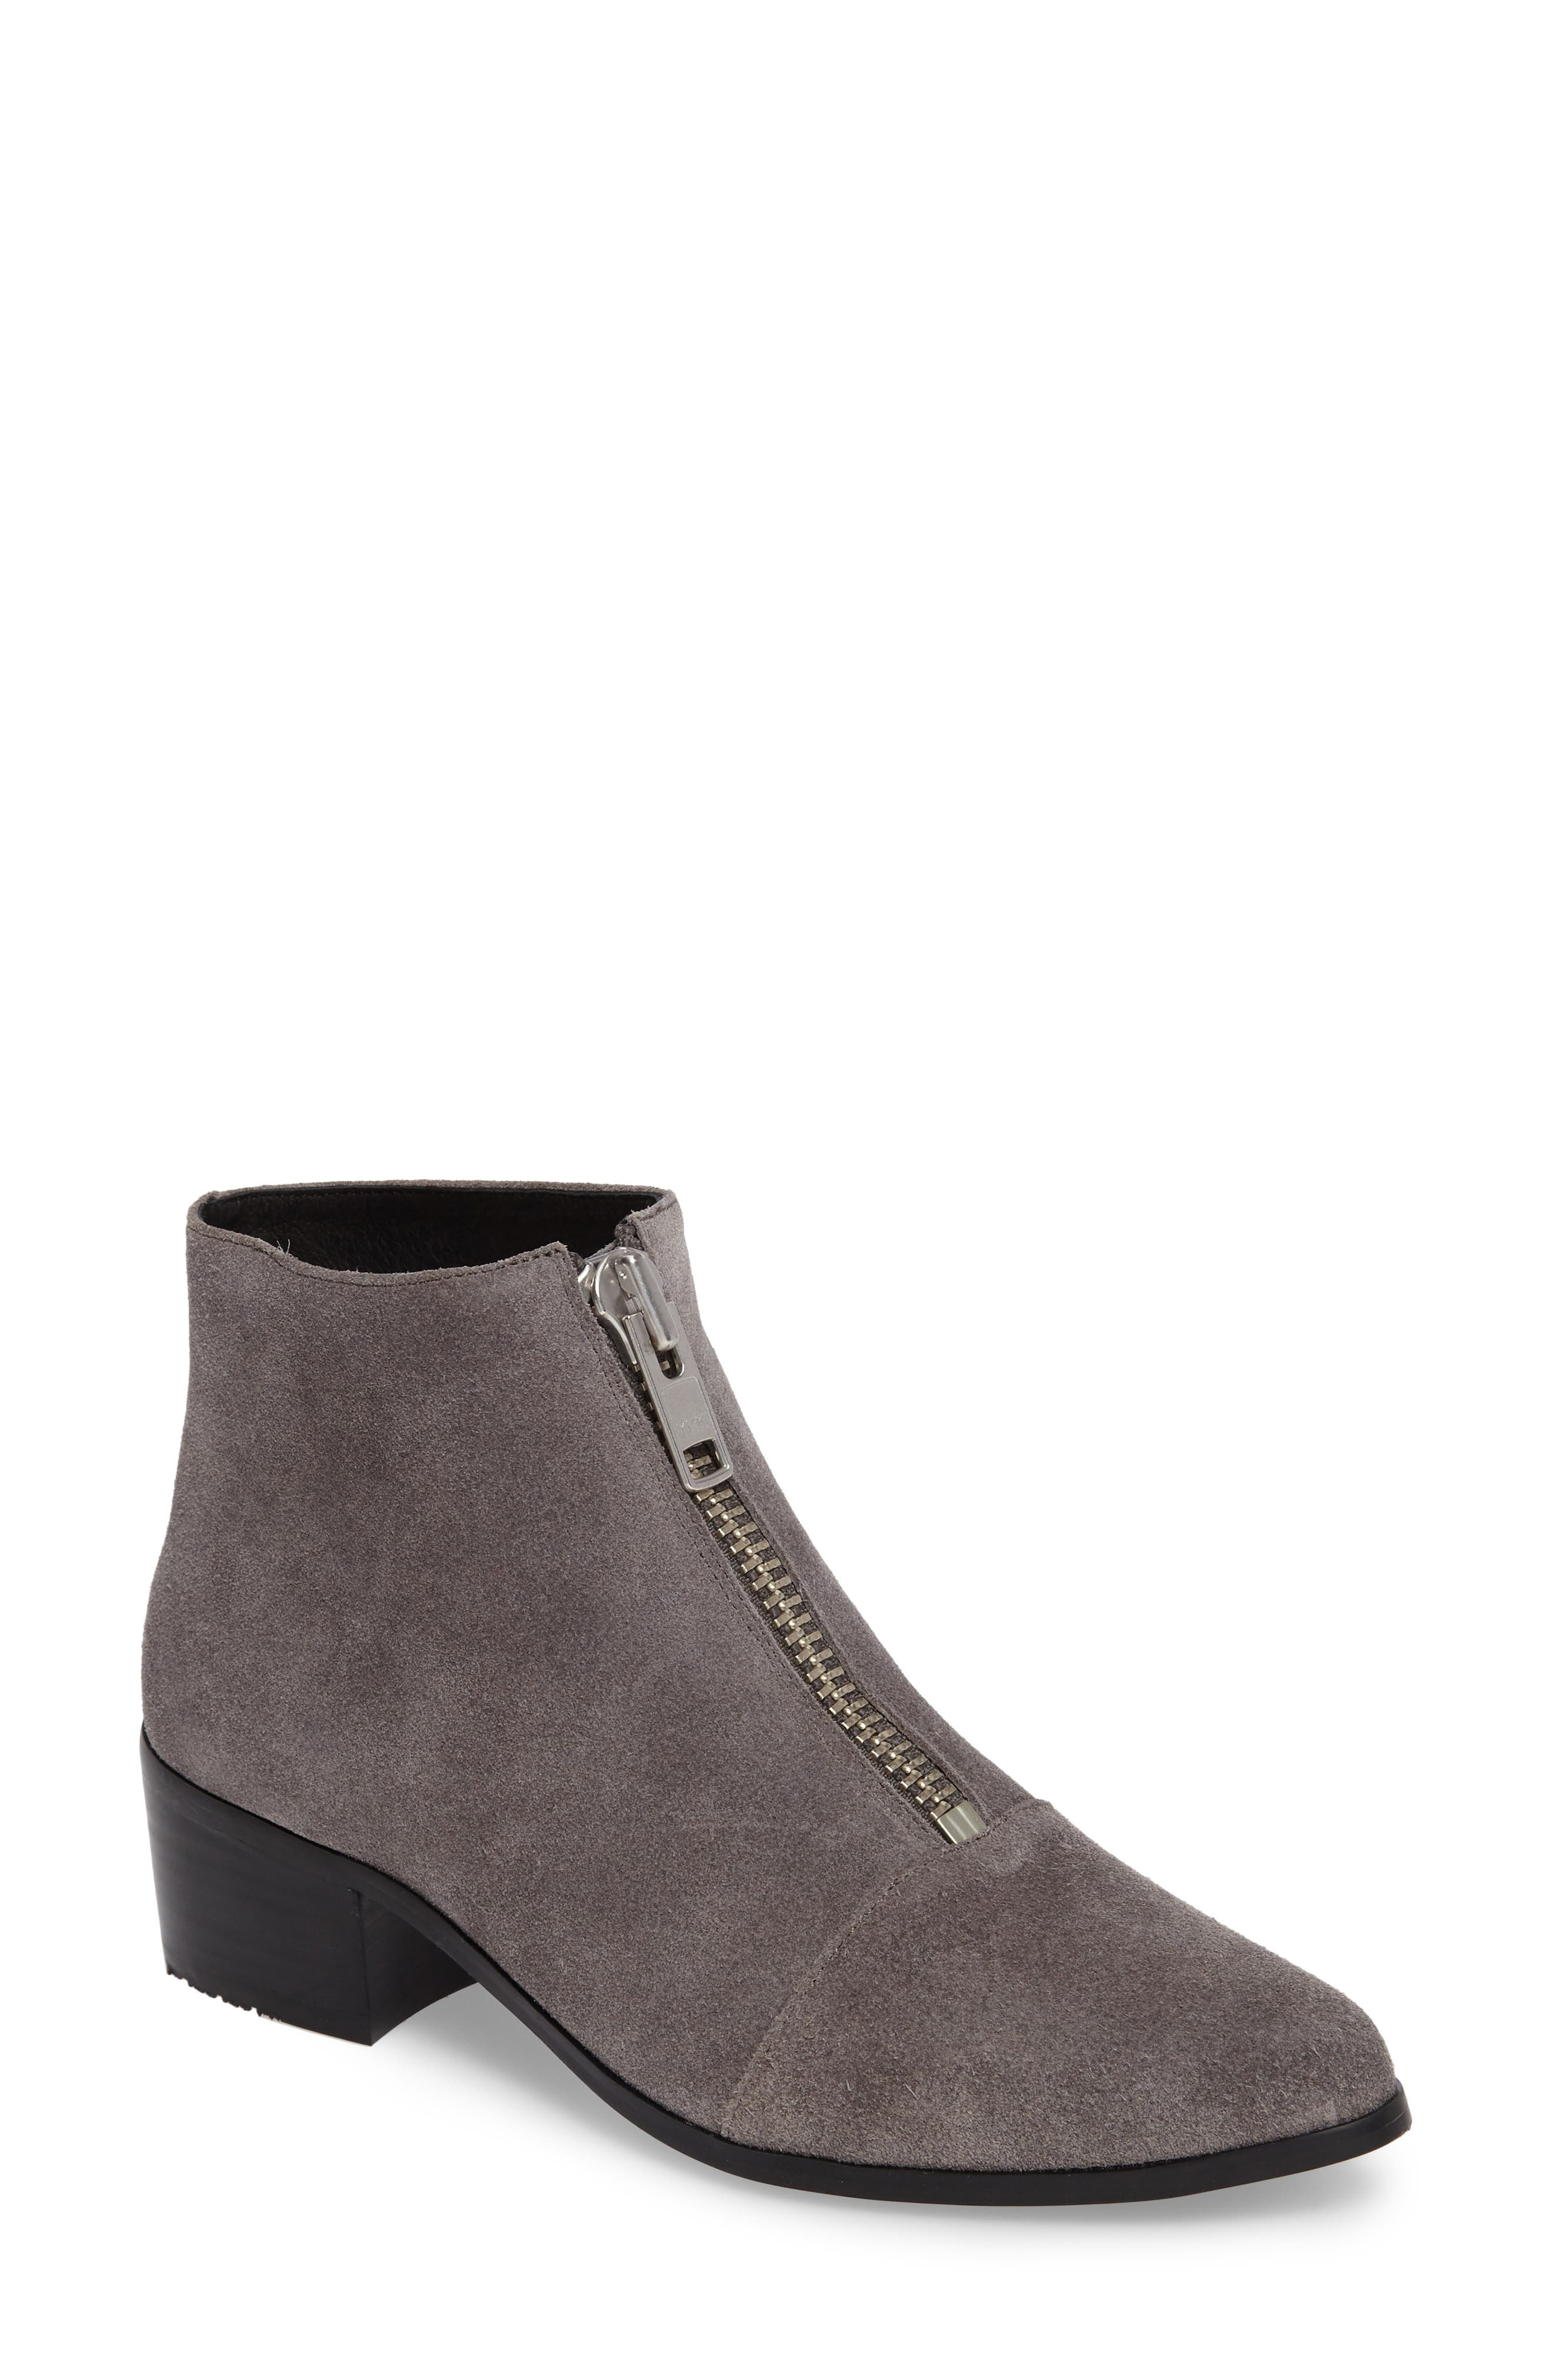 GREY CITY Winona Front Zip Bootie